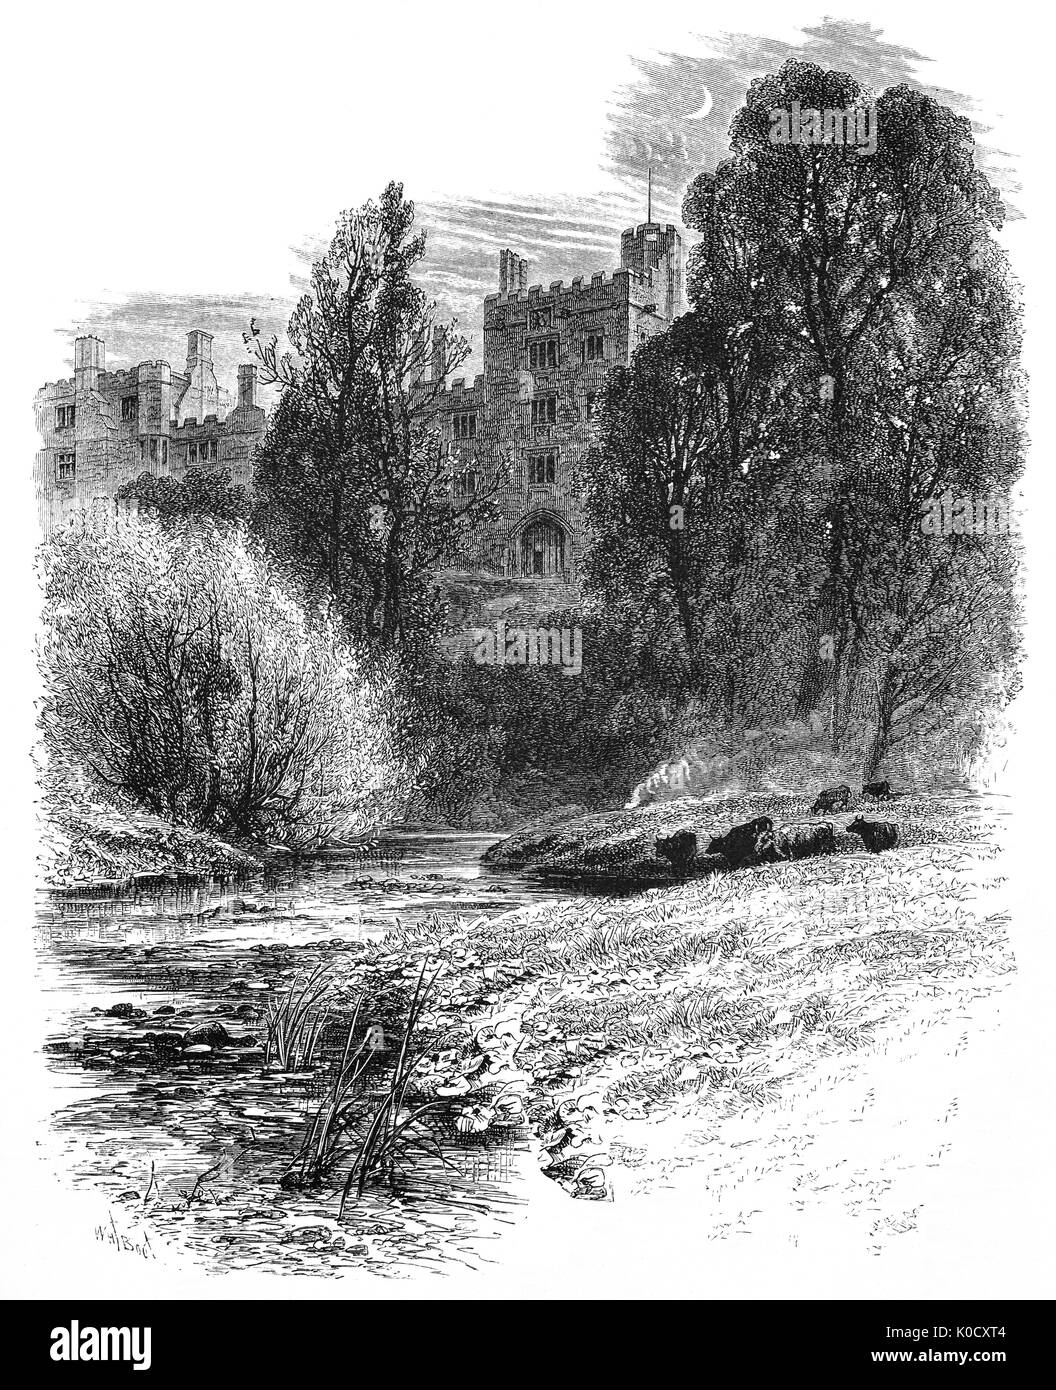 1870: A night viw over the River Wye of Haddon Hall, an English country house near Bakewell is one of the seats Stock Photo